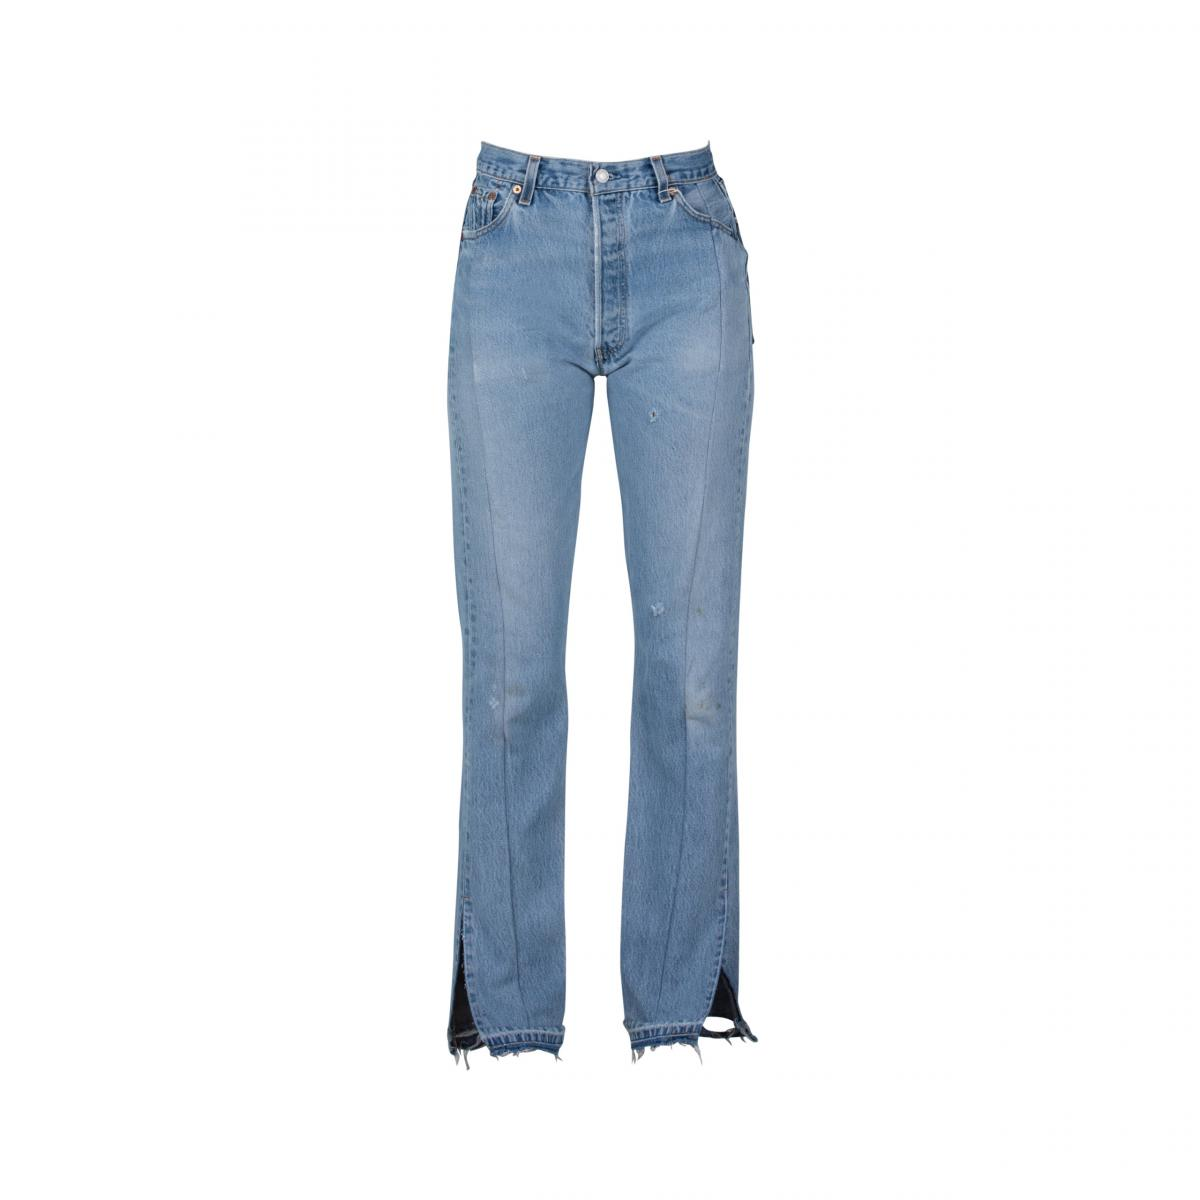 Unraveled by EB denim, available on ebdenim.com for $325 Hailey Baldwin Pants Exact Product